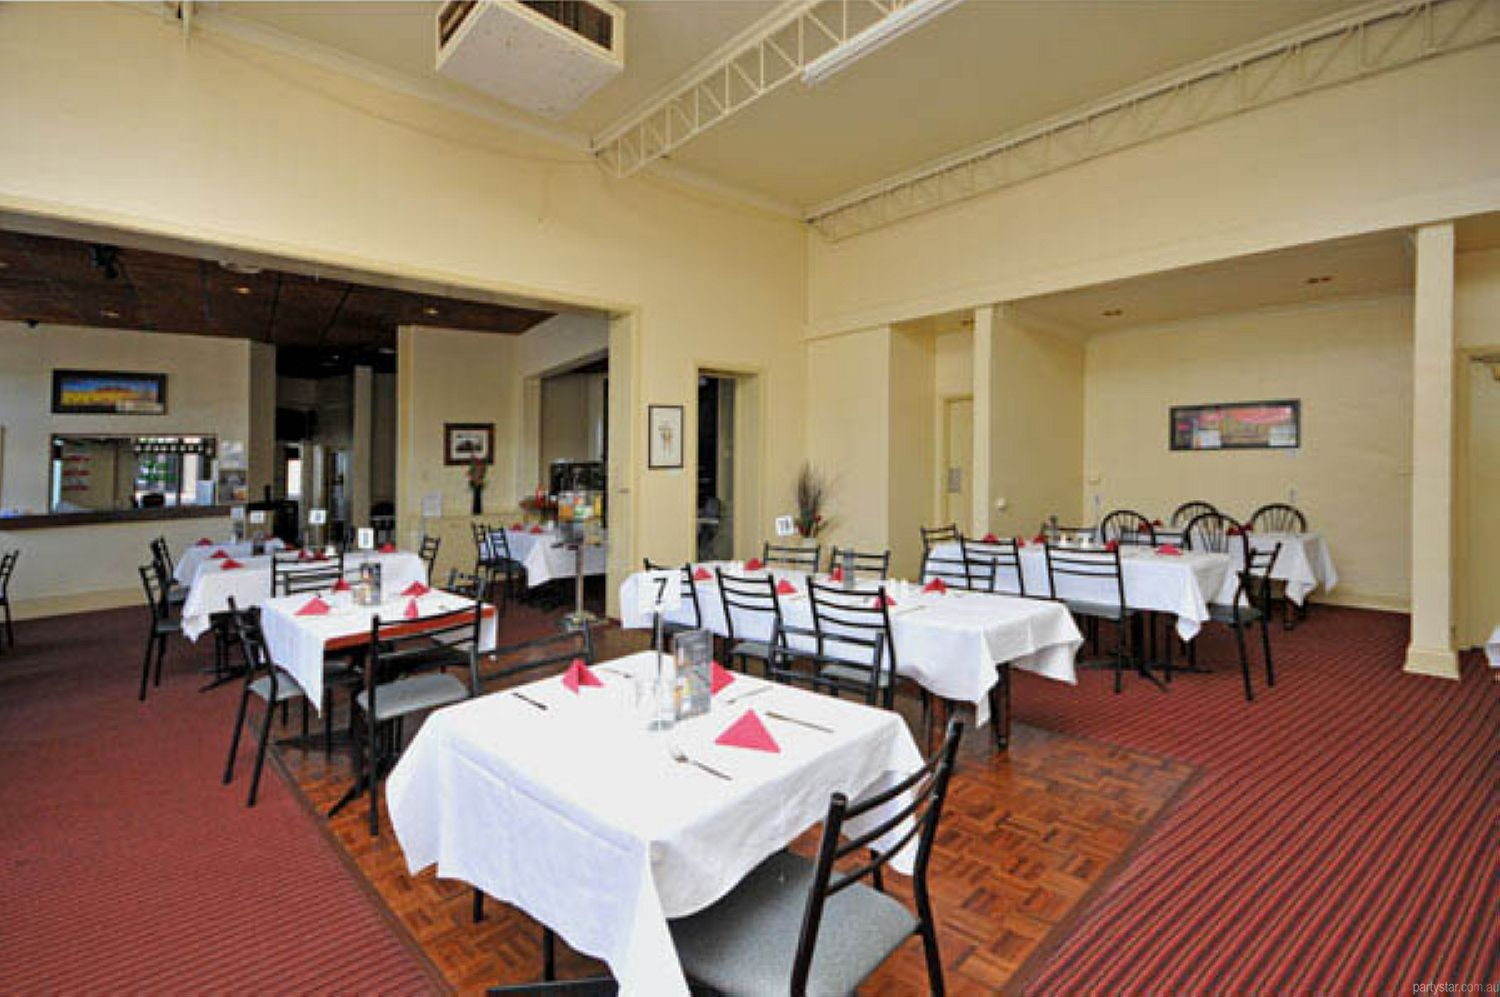 Brian Boru Hotel, Bendigo, VIC. Function Room hire photo #1